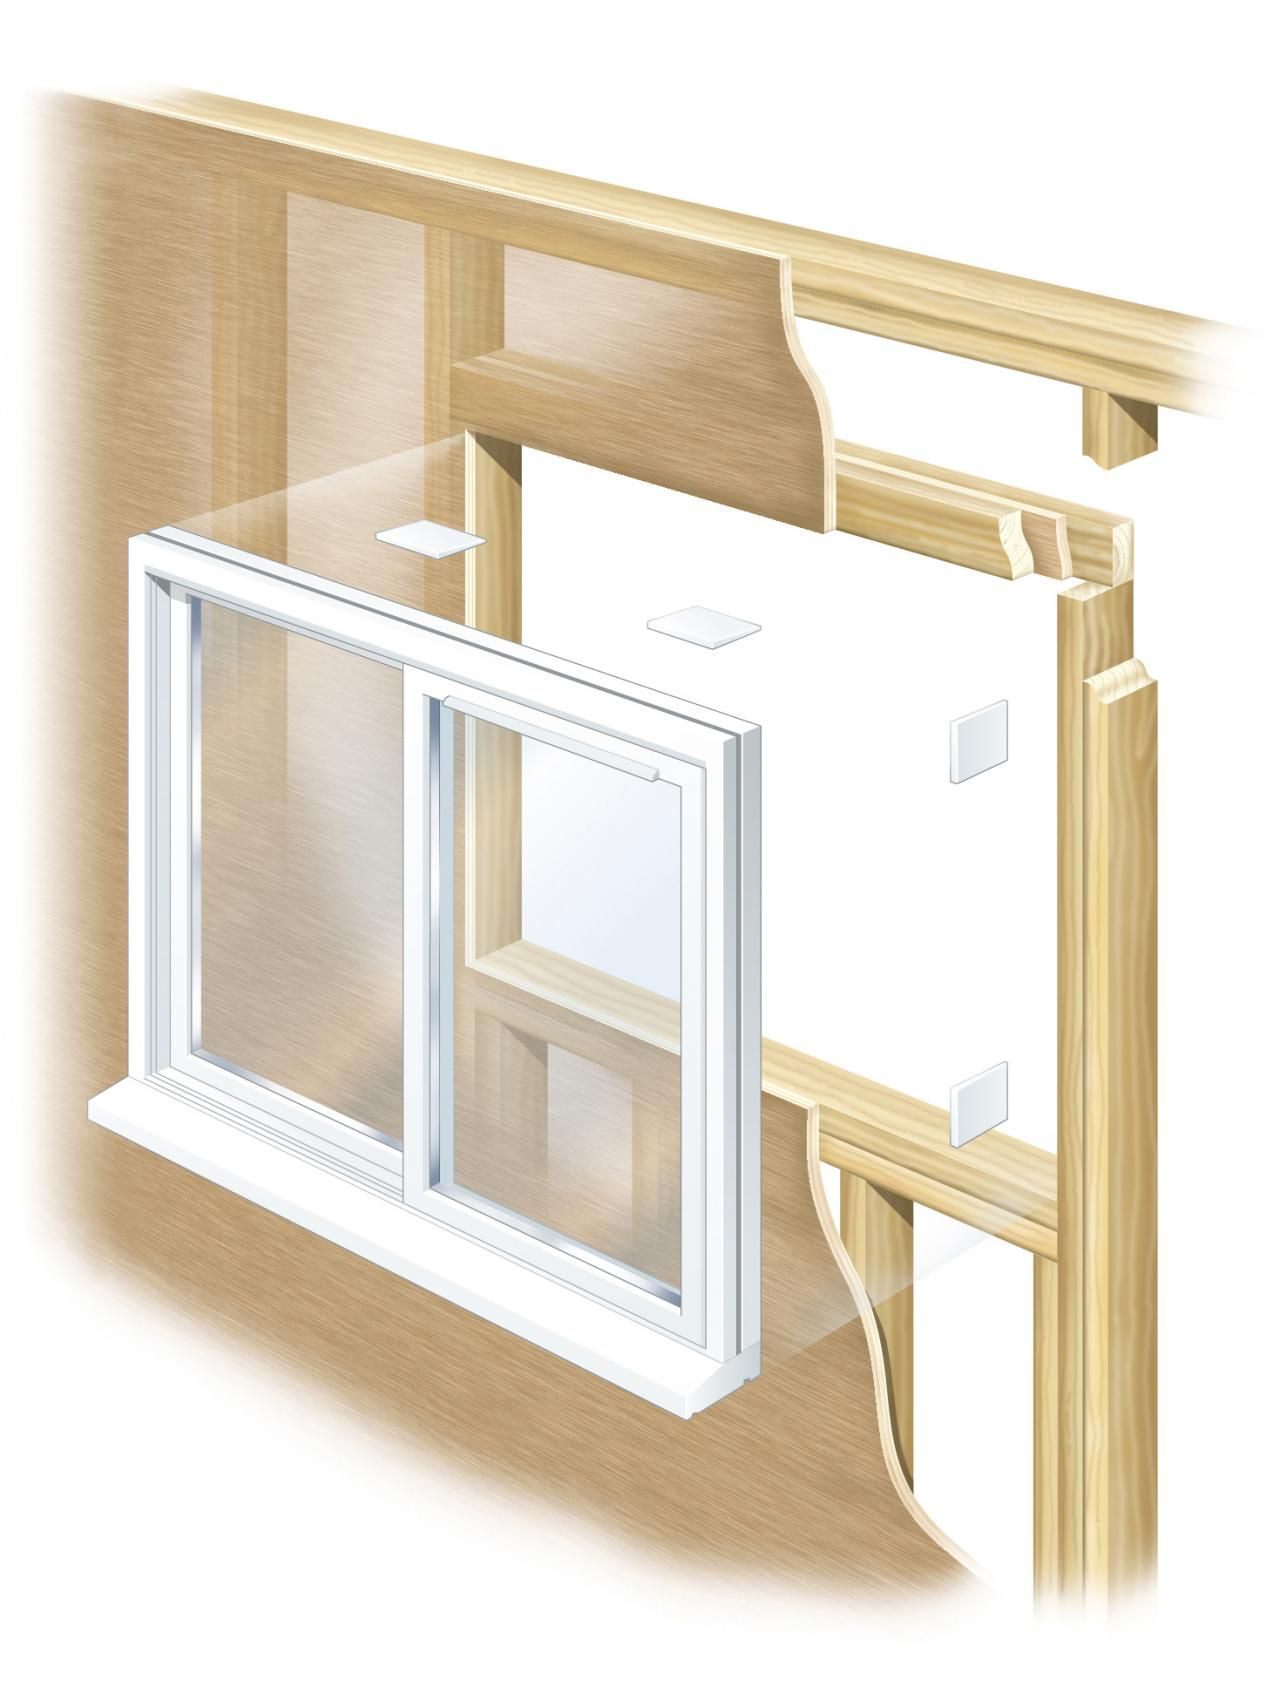 How To Install Window Frame